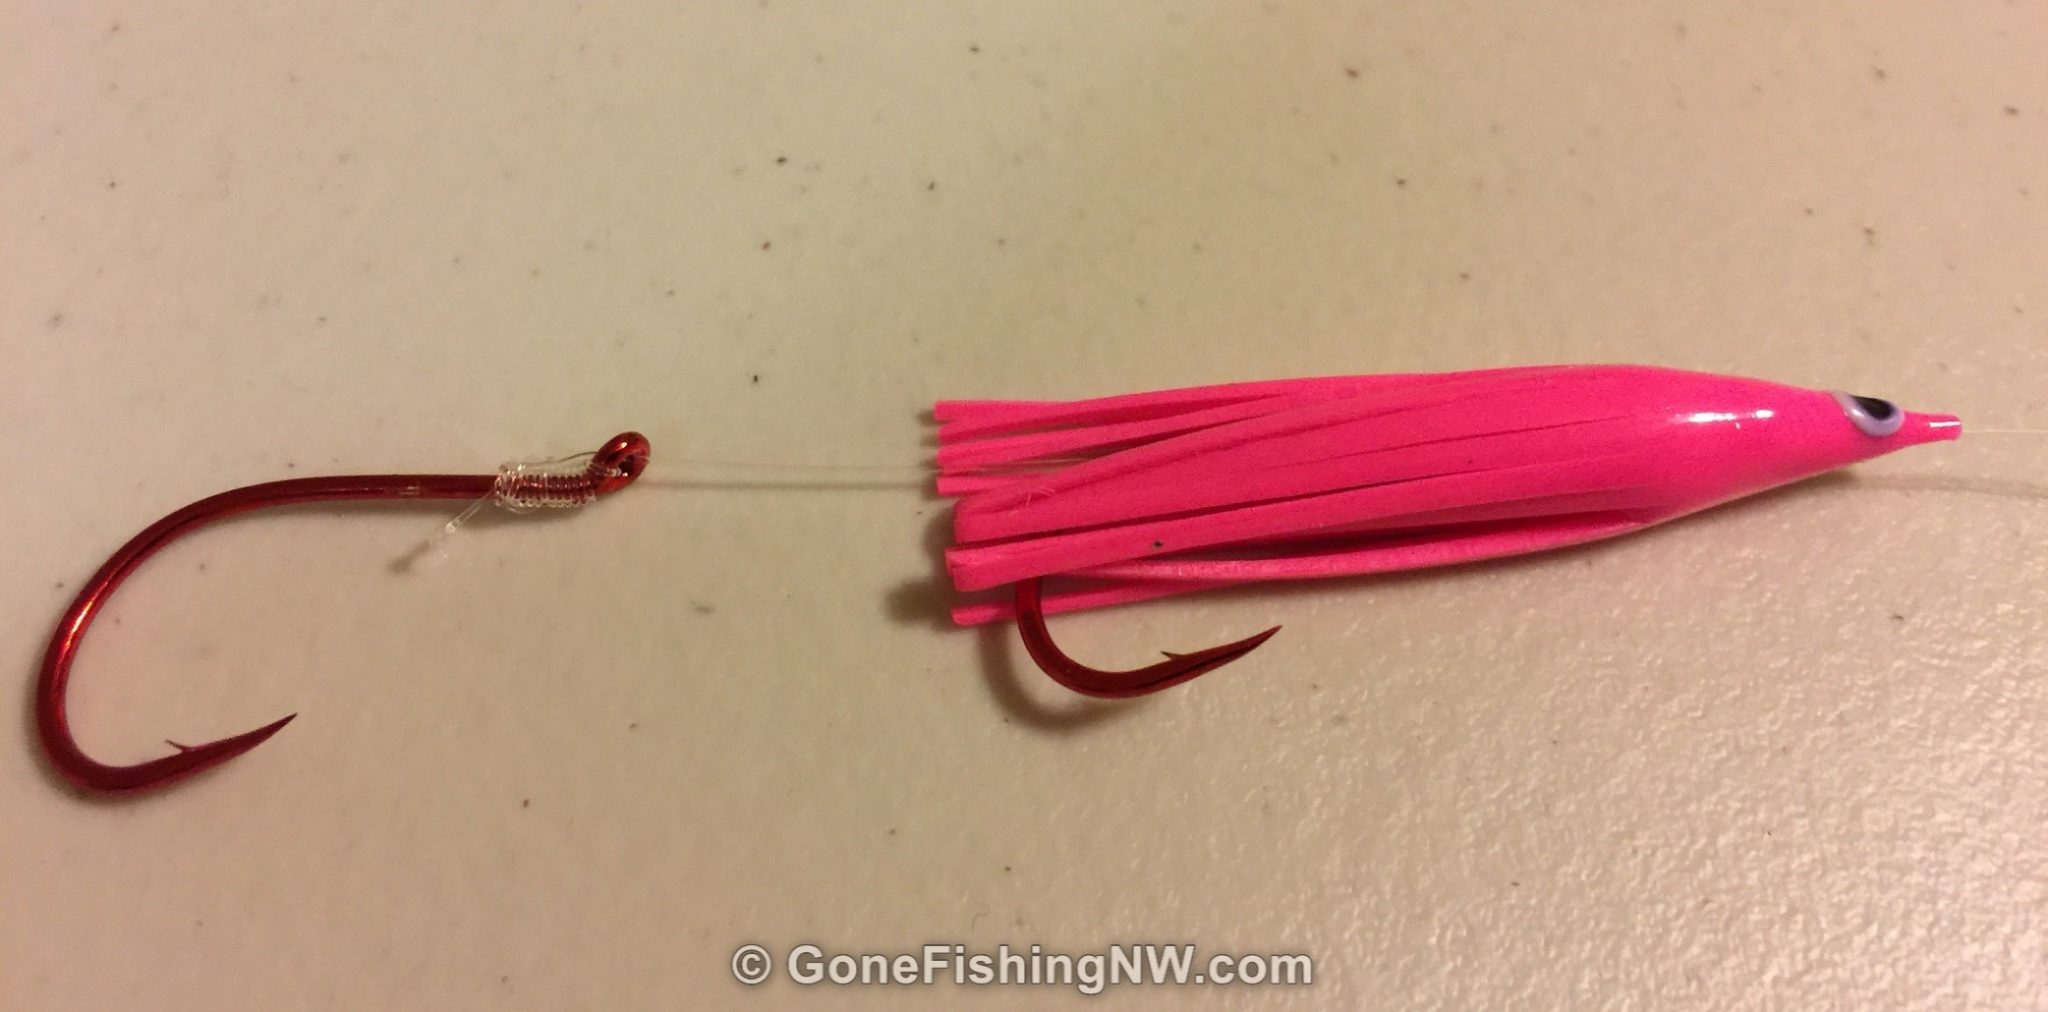 The Best Guide To Fish For Sockeye In Lakes – Gone Fishing Northwest